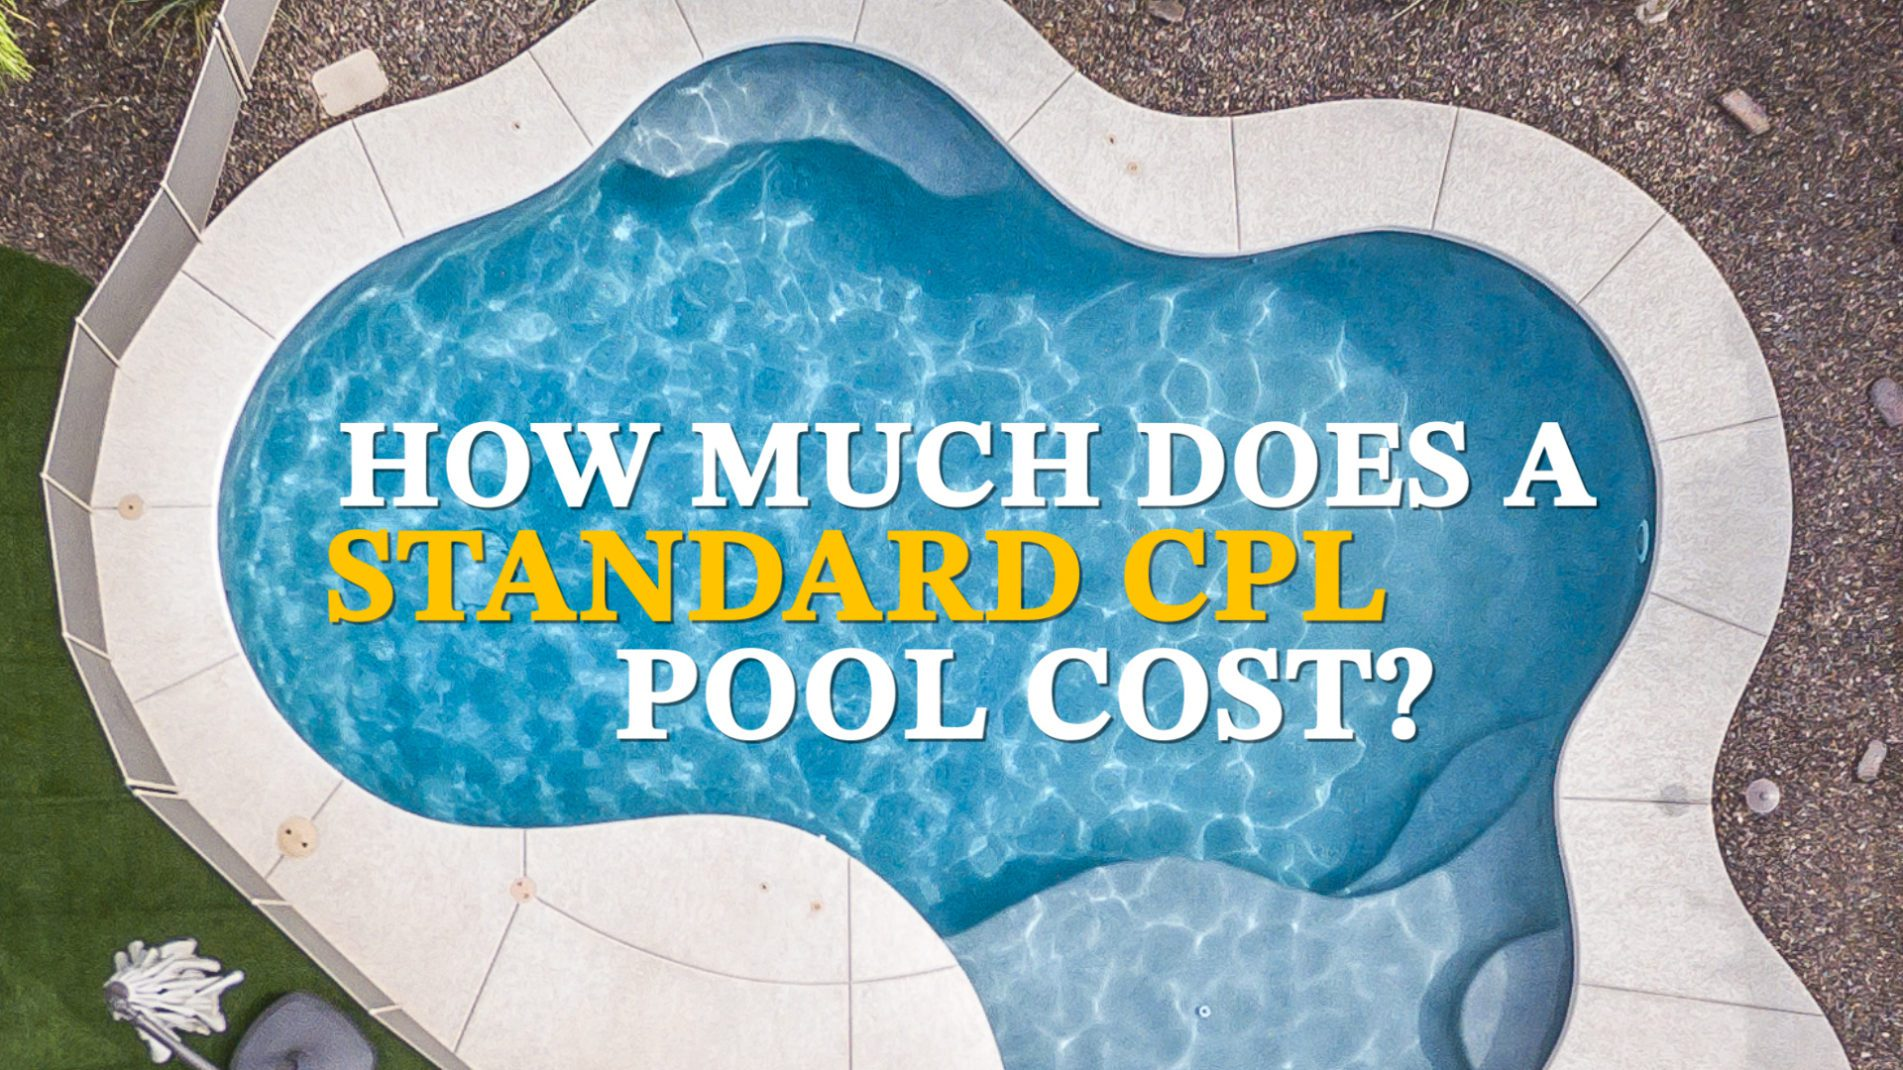 How Much Does a Standard CPL Pool Cost?